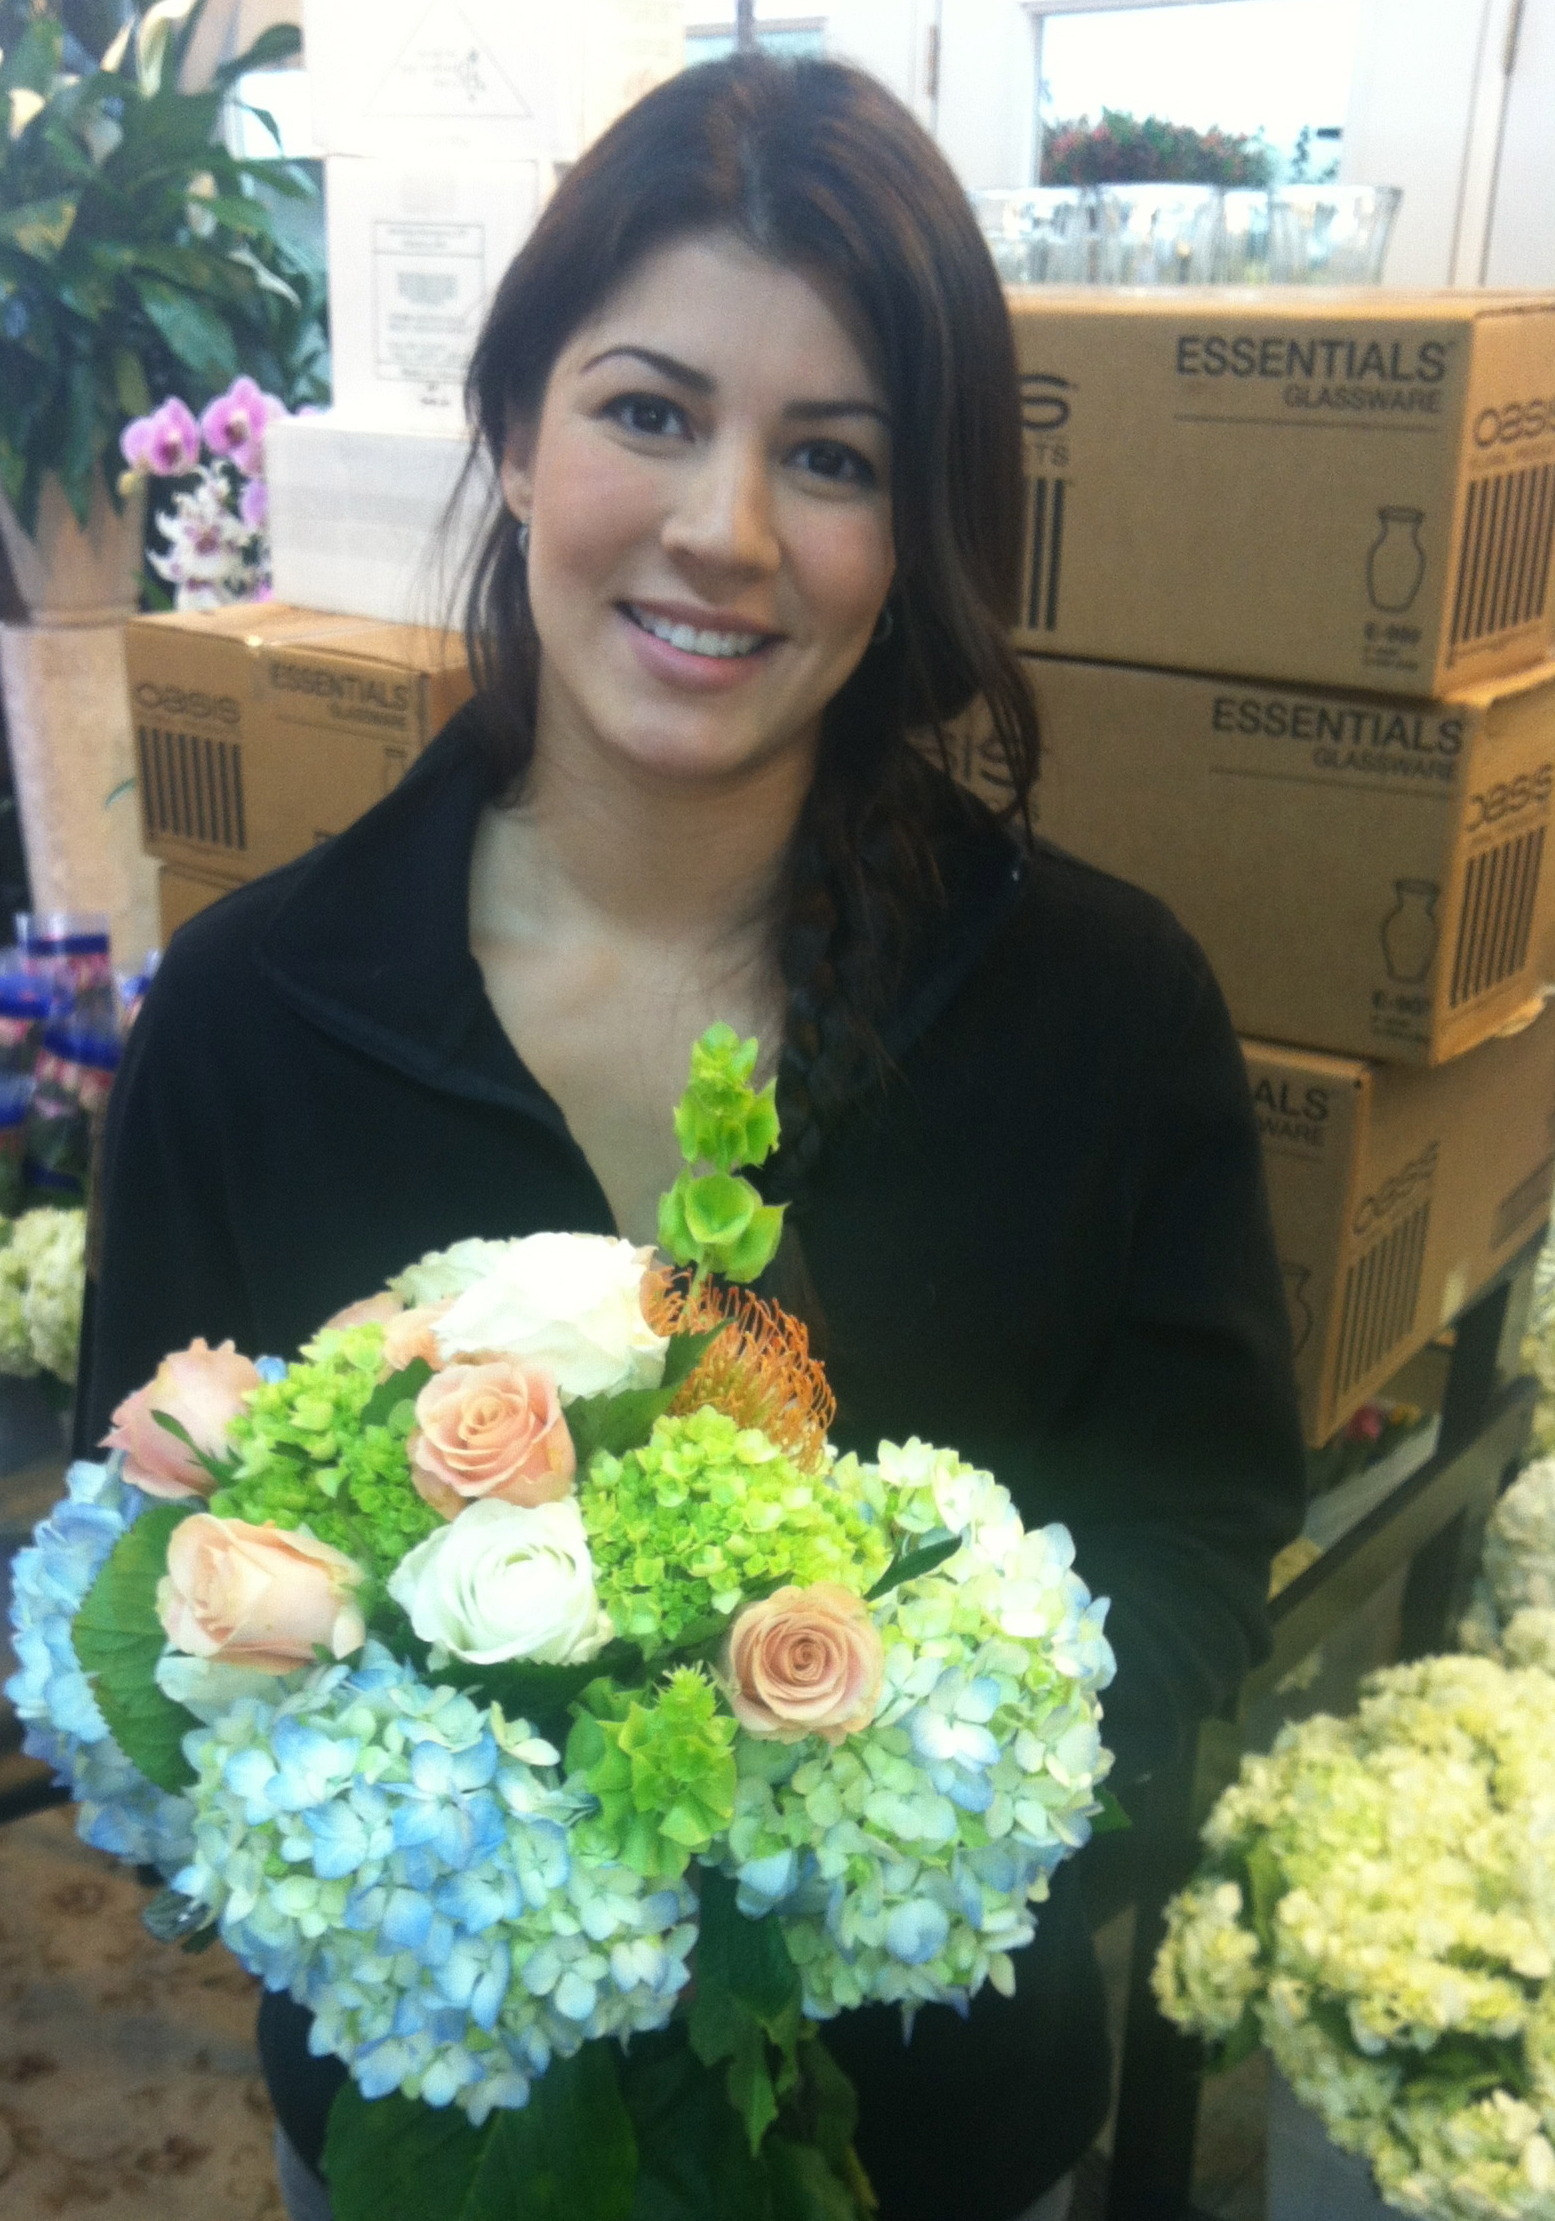 wedding florist newport beach ca, wedding flowers, center pieces, bridal bouquets